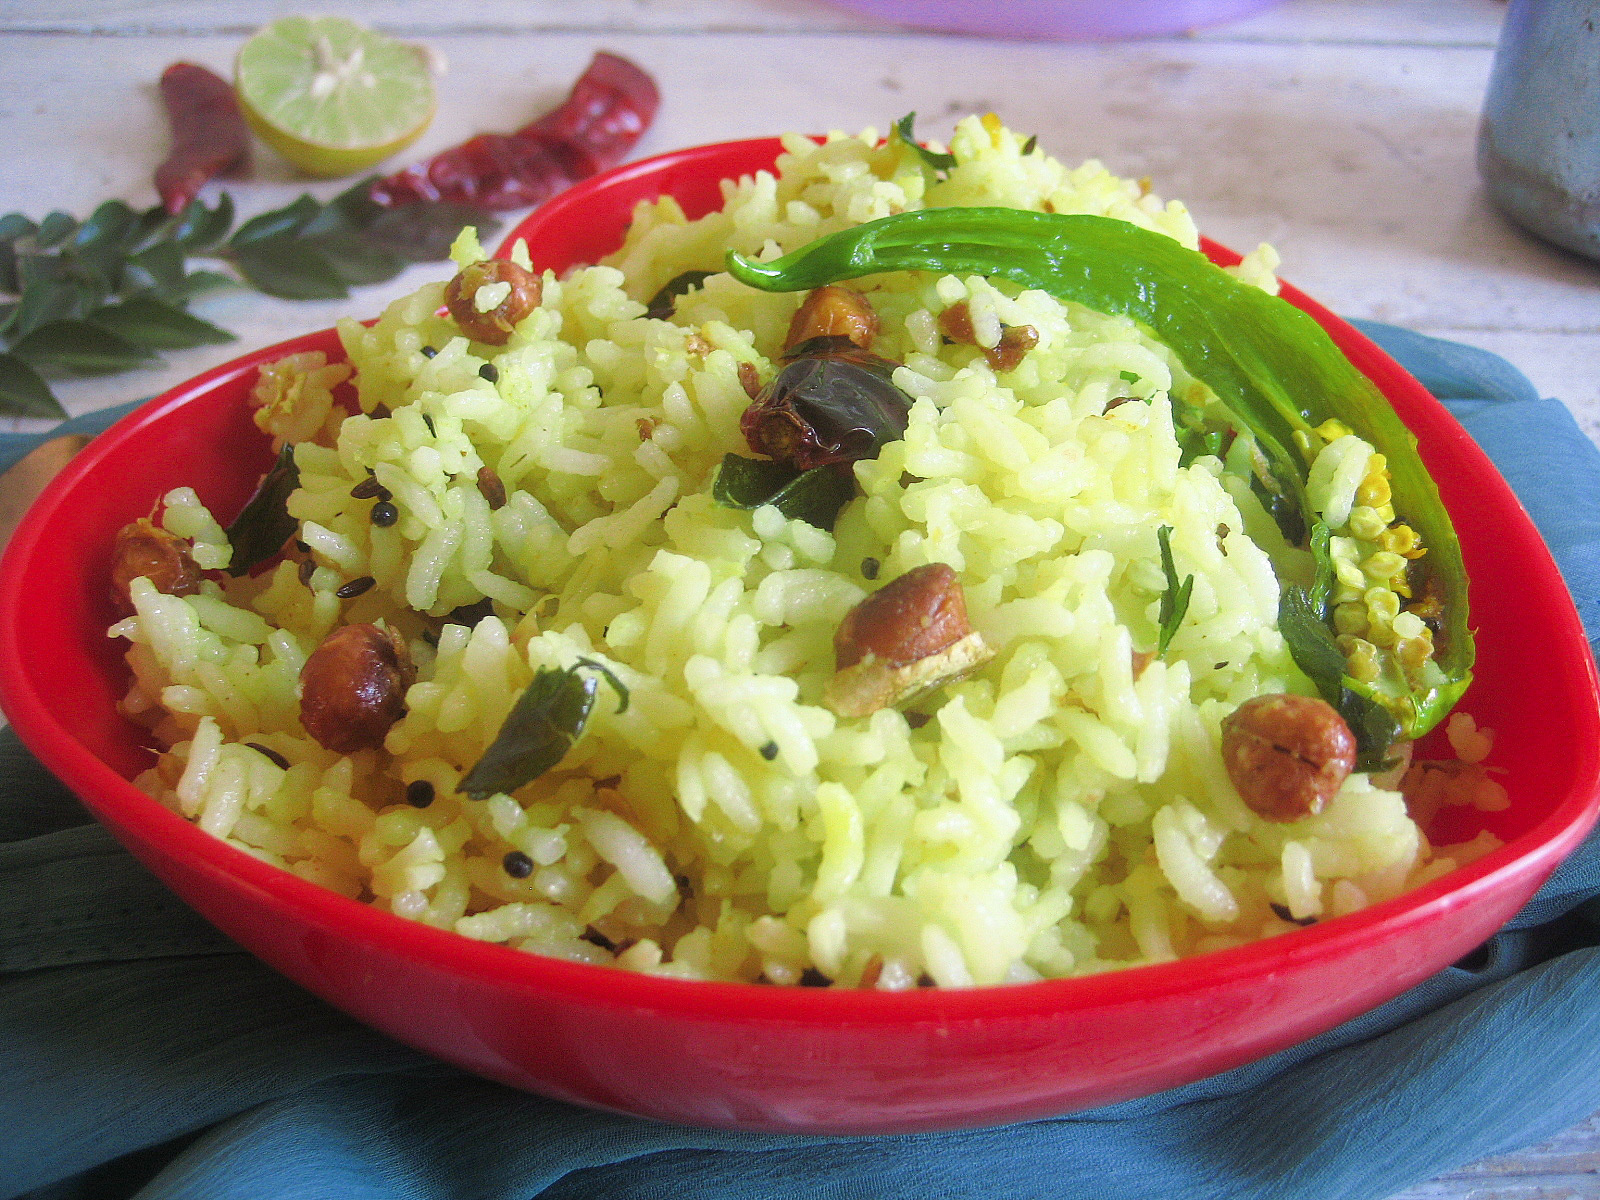 Lemon rice / Nimmakaya annam